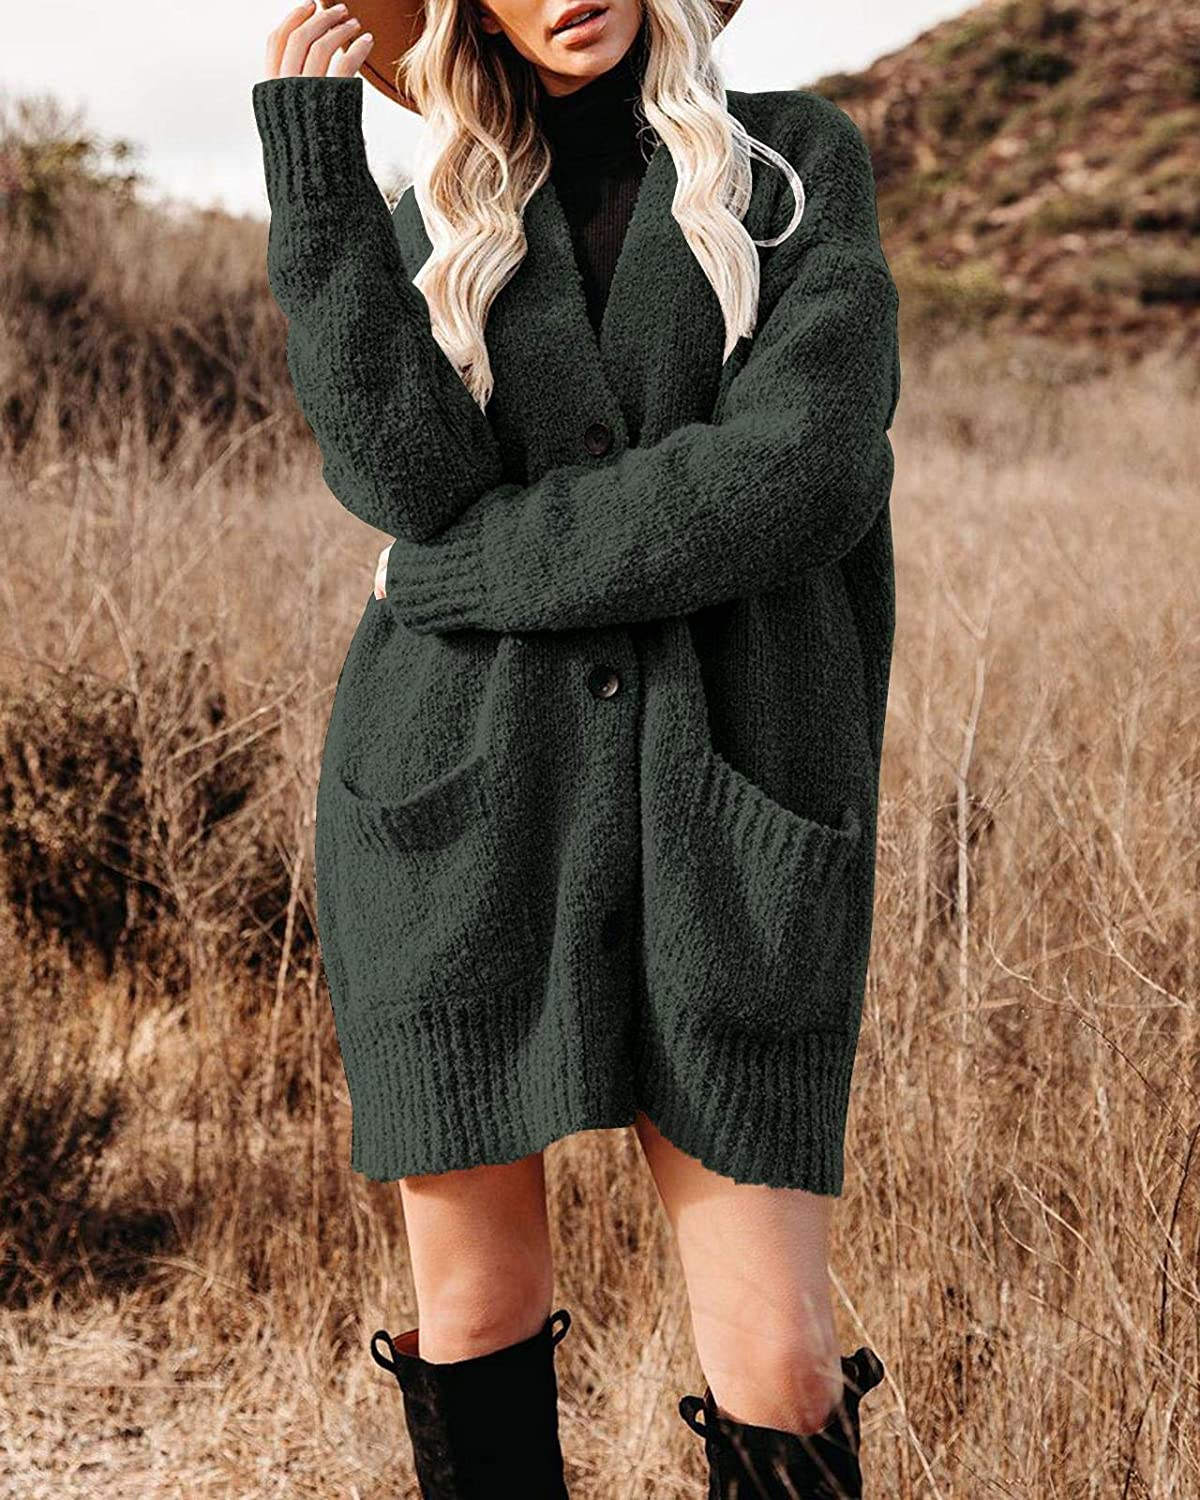 Womens Open Front Knit Cardigan Sweaters Chunky Long Sleeve Outwear Coat Popcorn Button Down Sweater with Pockets